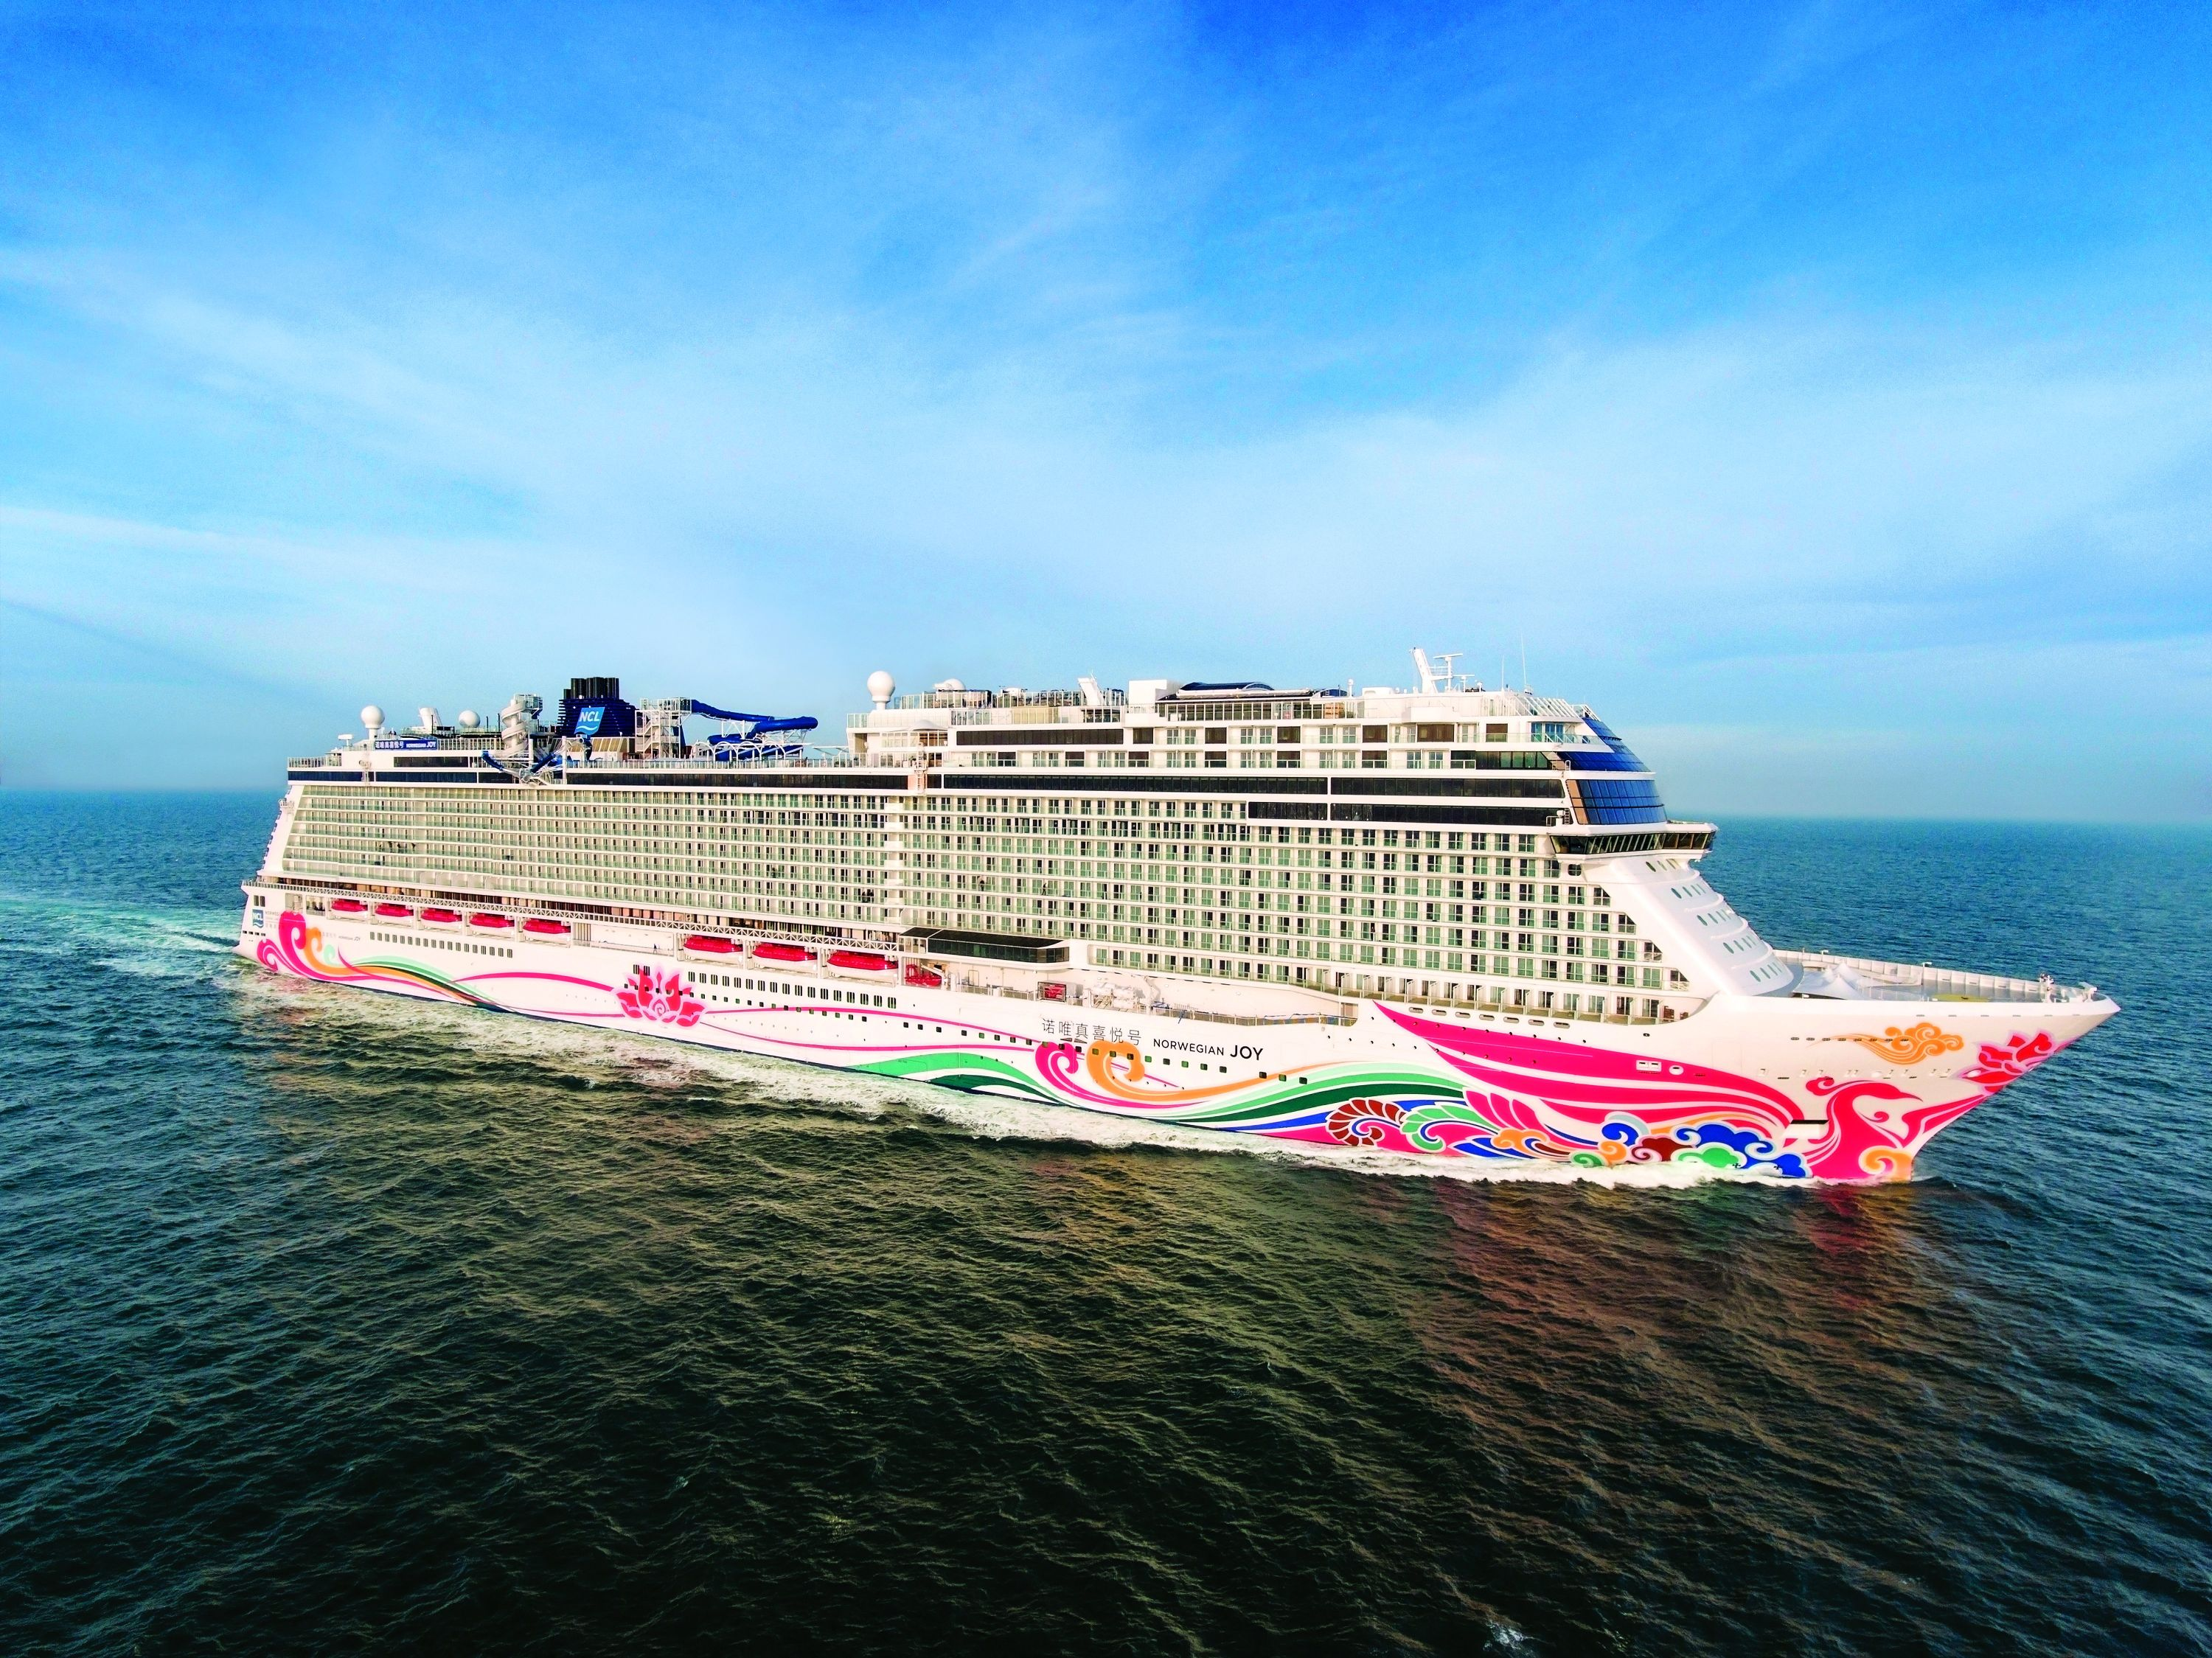 Norwegian Joy 171 Cruisereiziger